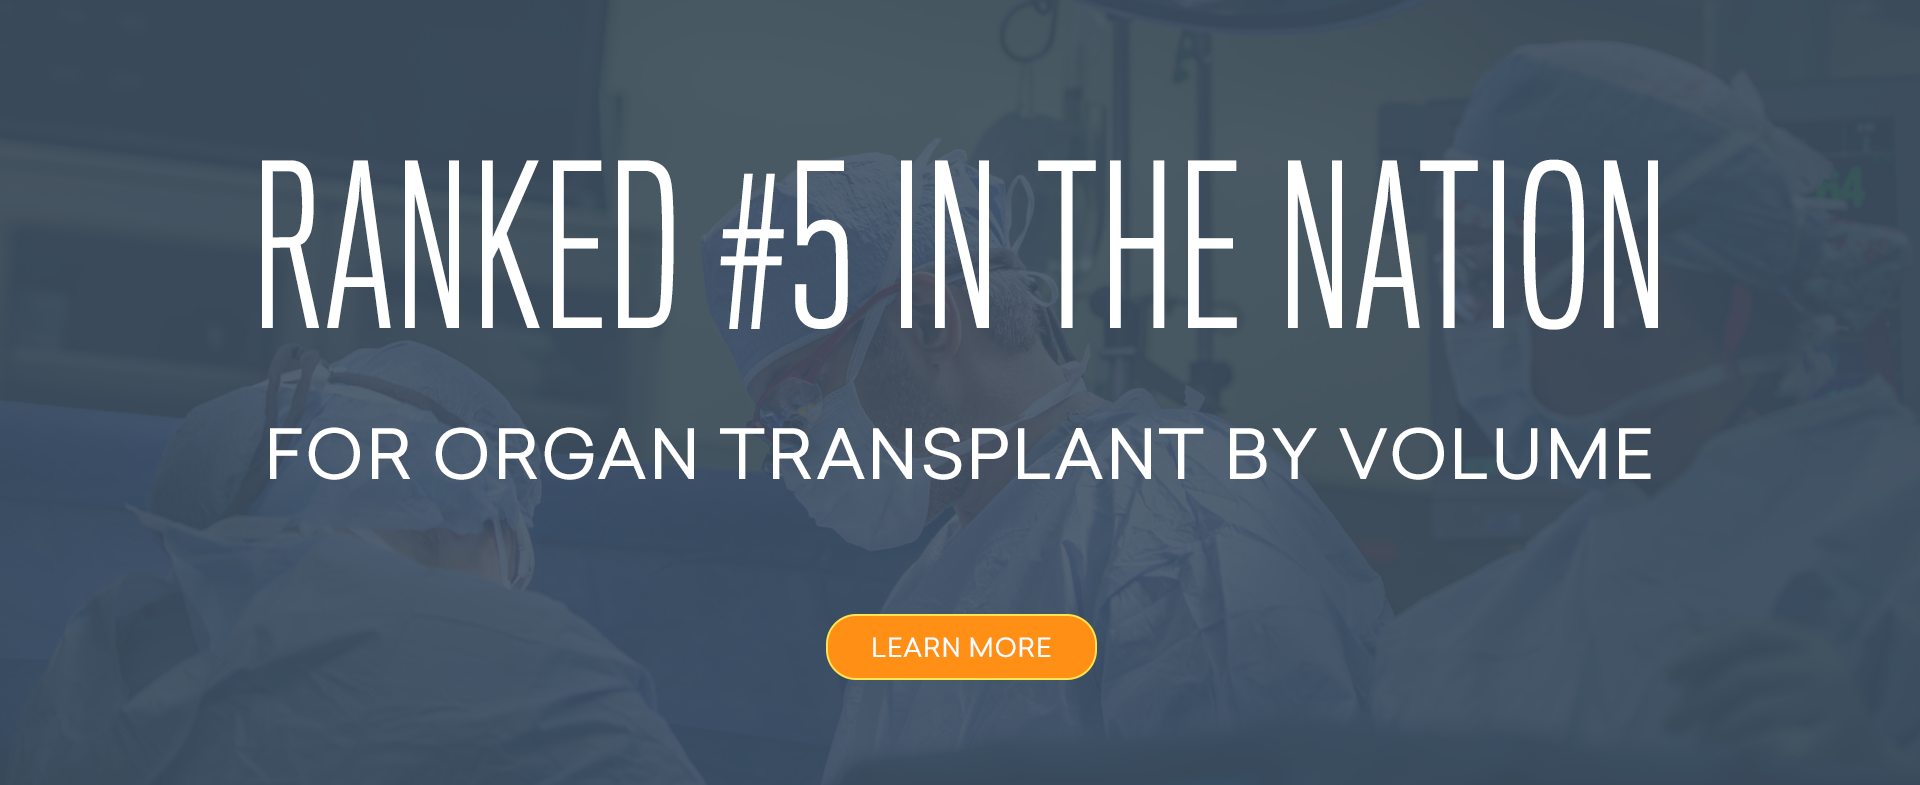 Ranked #5 in the nation for organ transplant by volume